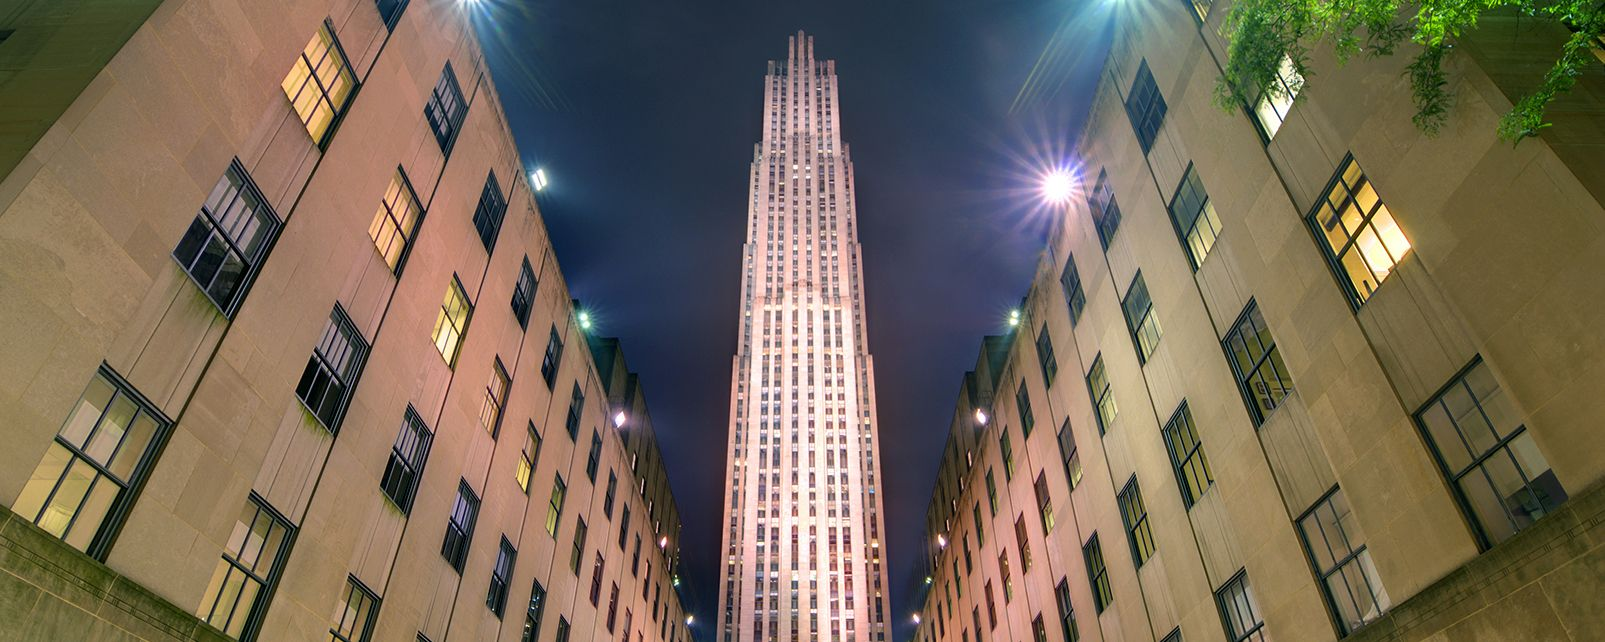 Rockfeller center , Il Rockefeller Center , Stati Uniti